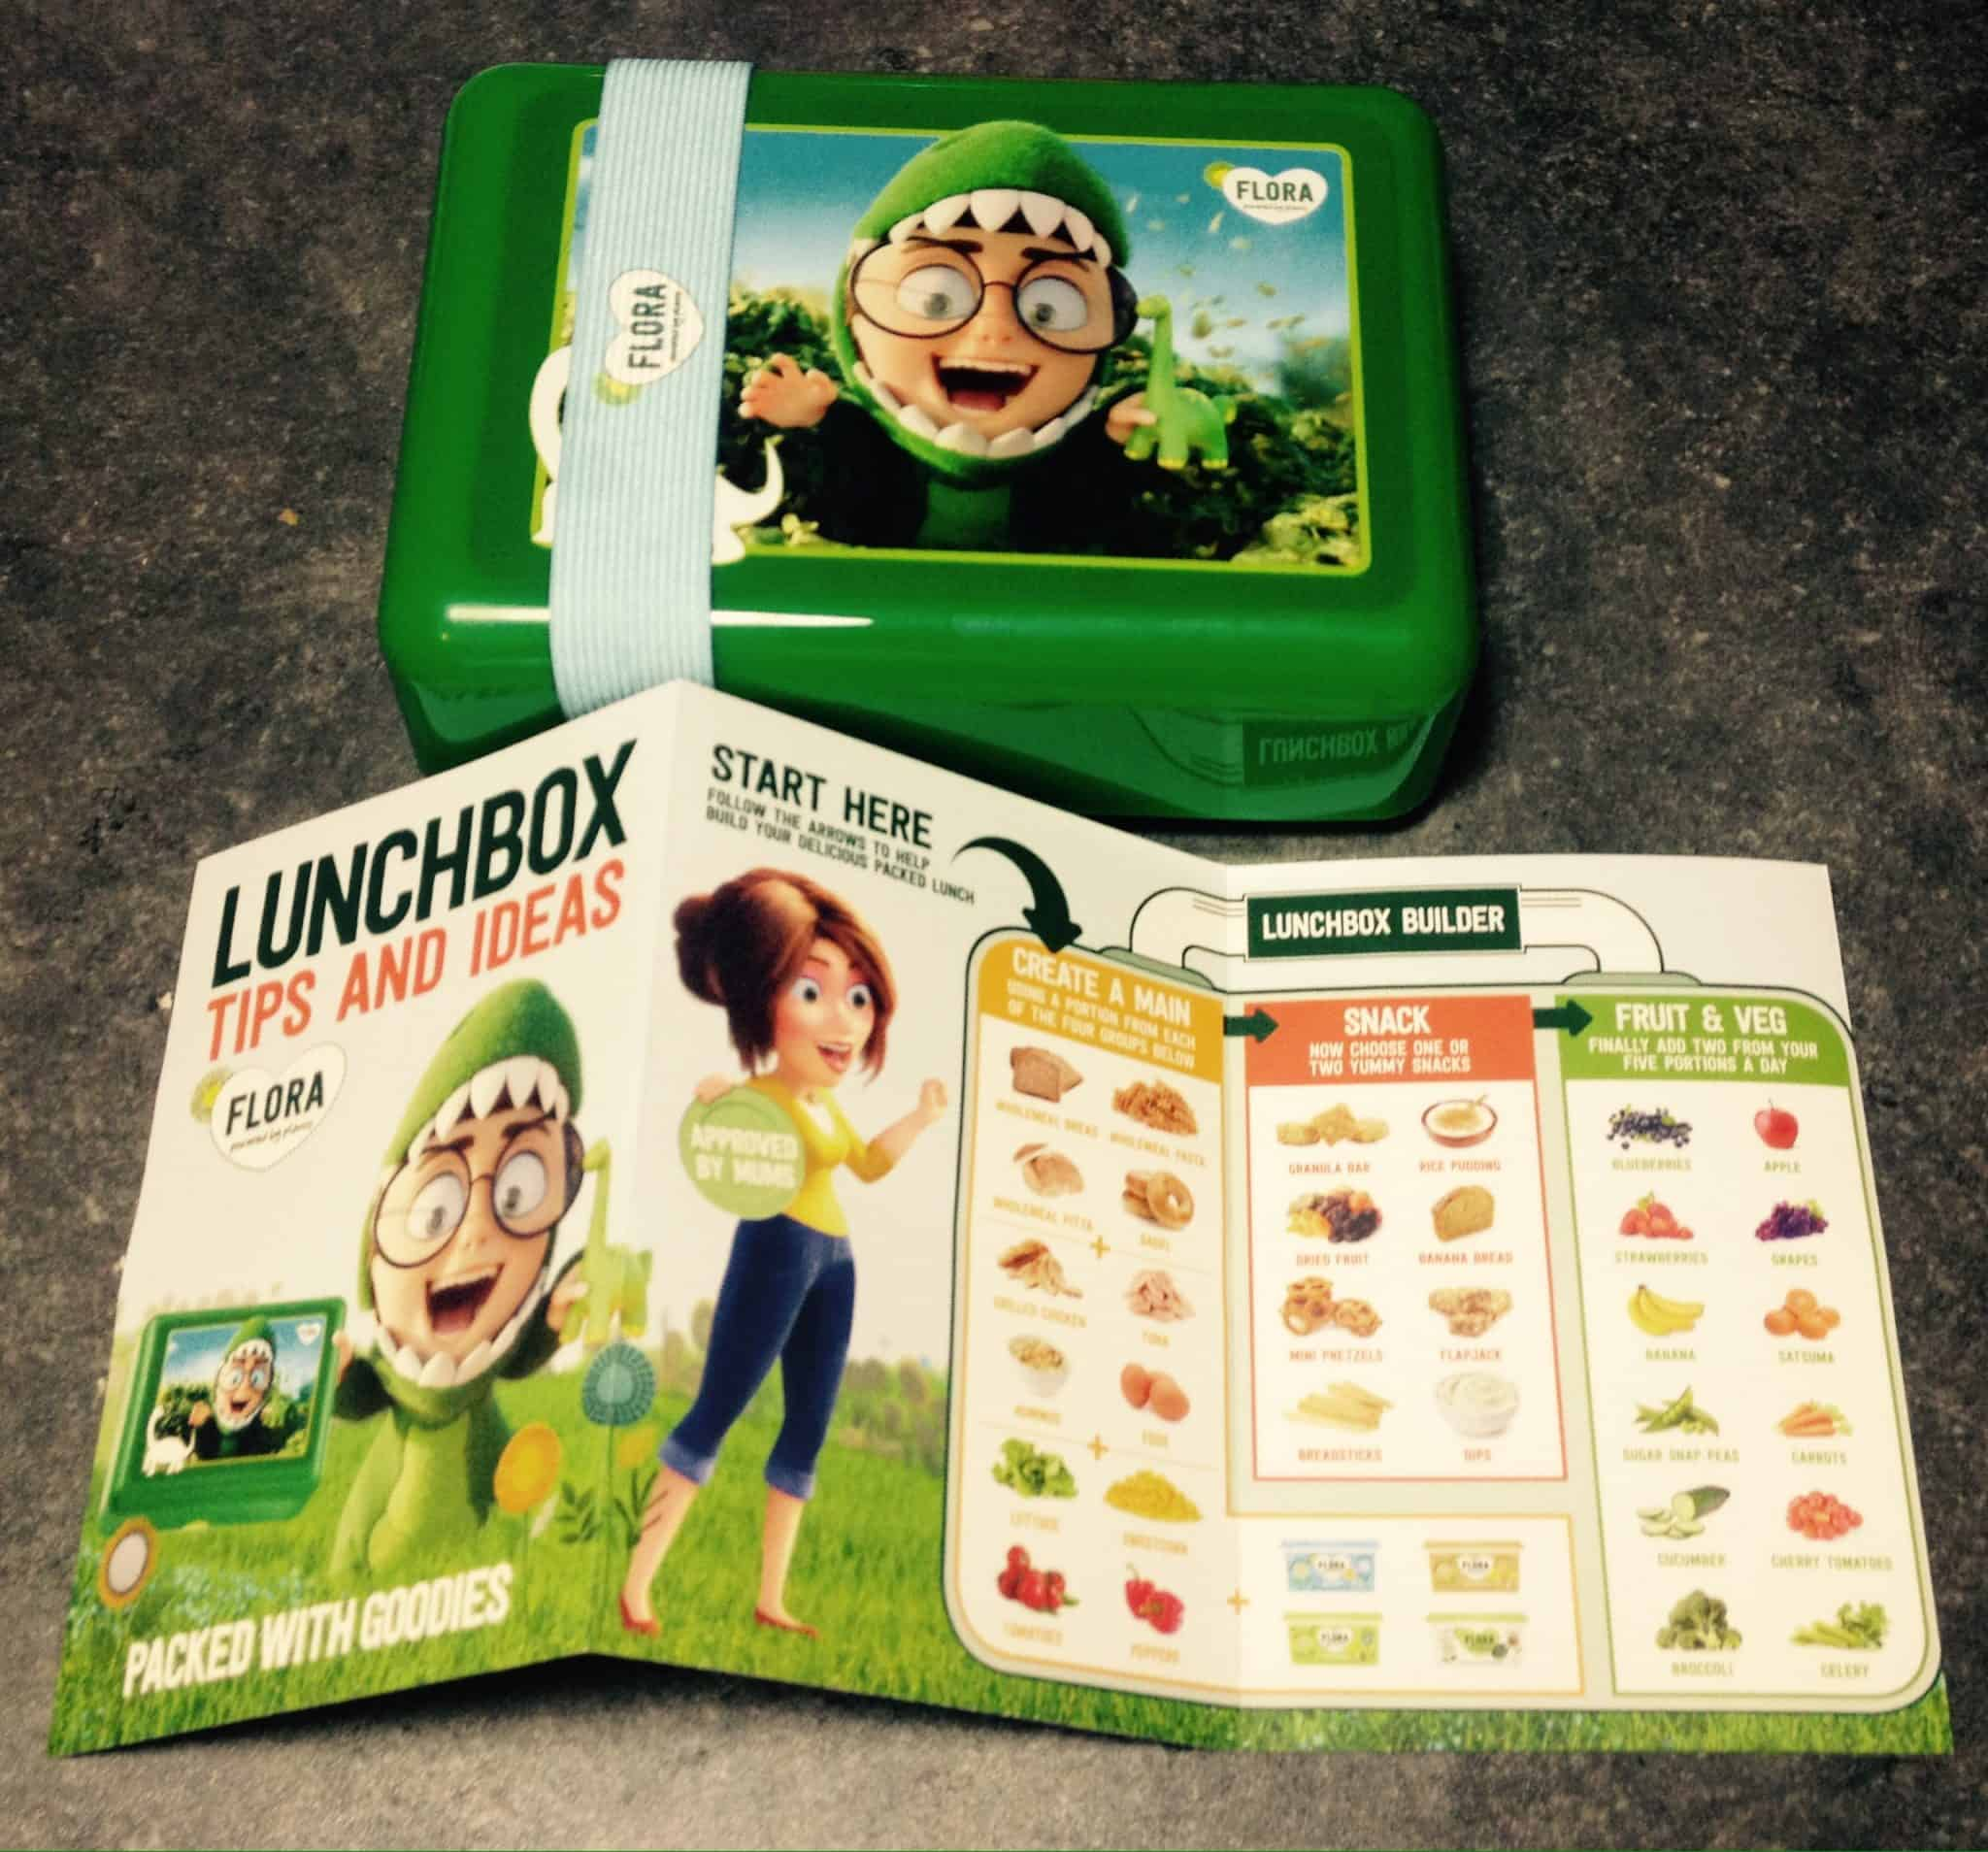 Lunchbox Tips and Ideas with Flora